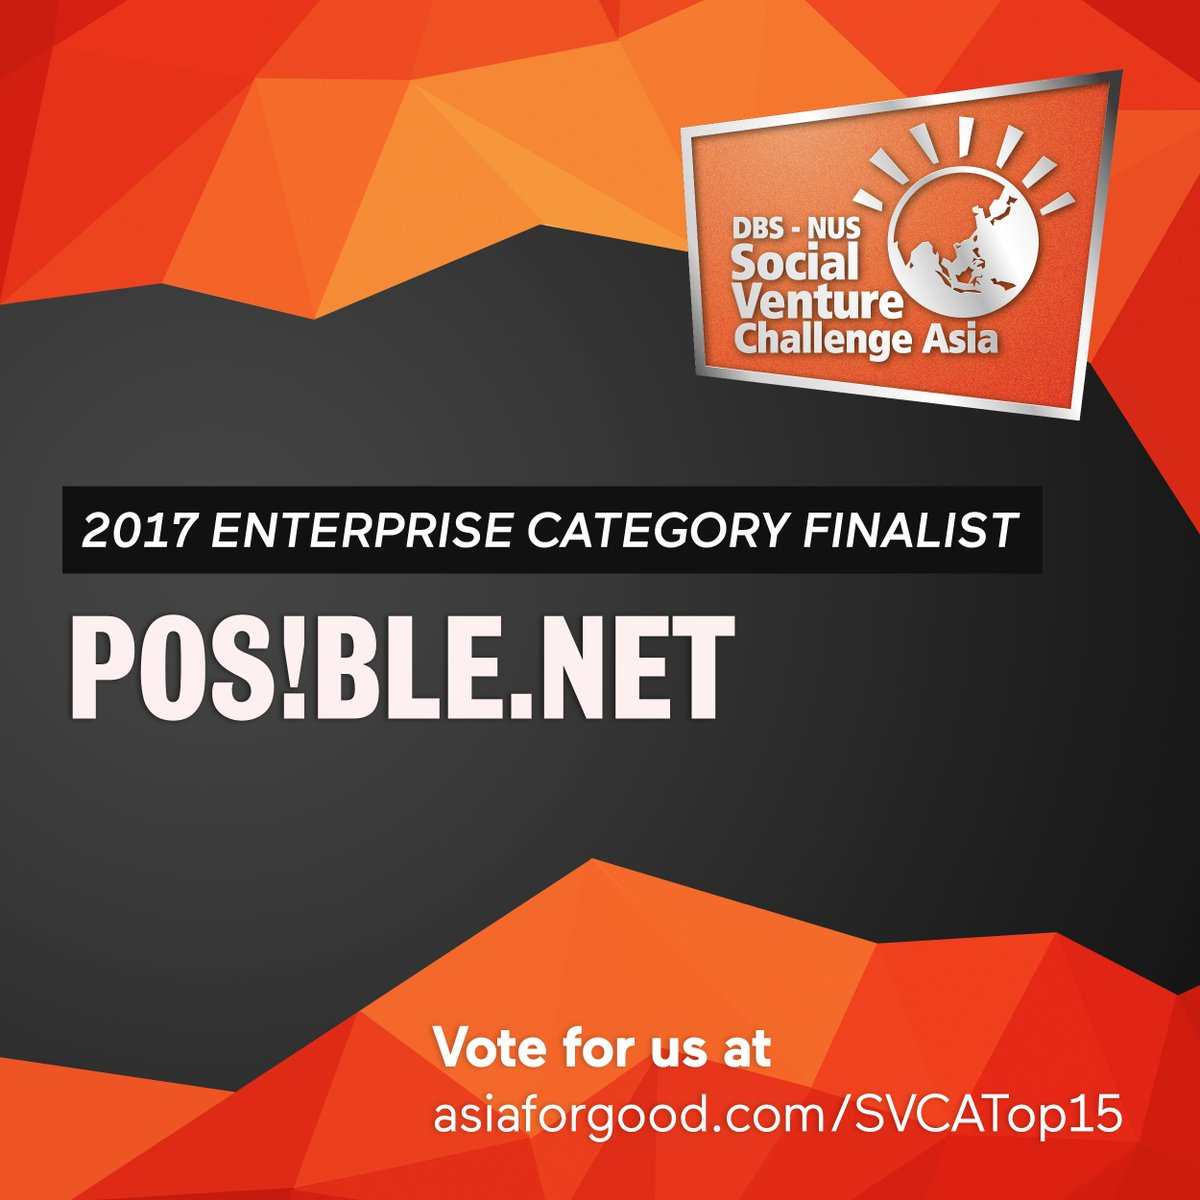 test Twitter Media - Last chance to make history! Vote https://t.co/BFj9Gq9CB3 in #SVCA2017 and change banking across Asia! Click: https://t.co/qQx1NzsGyE https://t.co/18sKwD3CUv